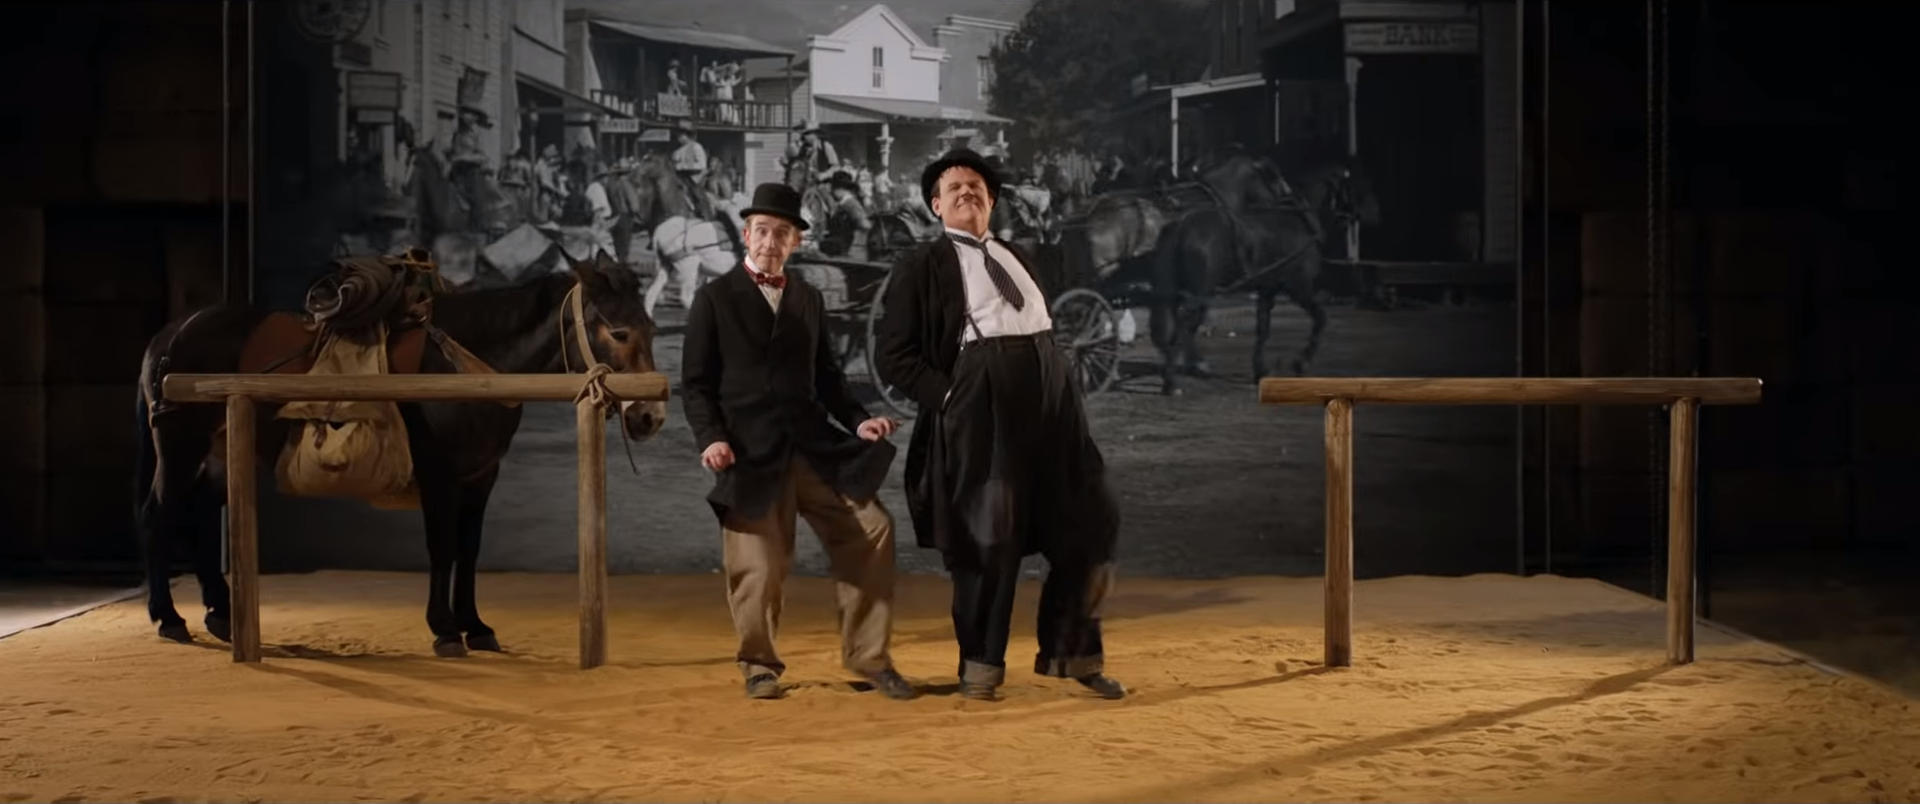 Stan Laurel (Steve Coogan) and Oliver Hardy (John C. Reilly) making  Way Out West  in 1937